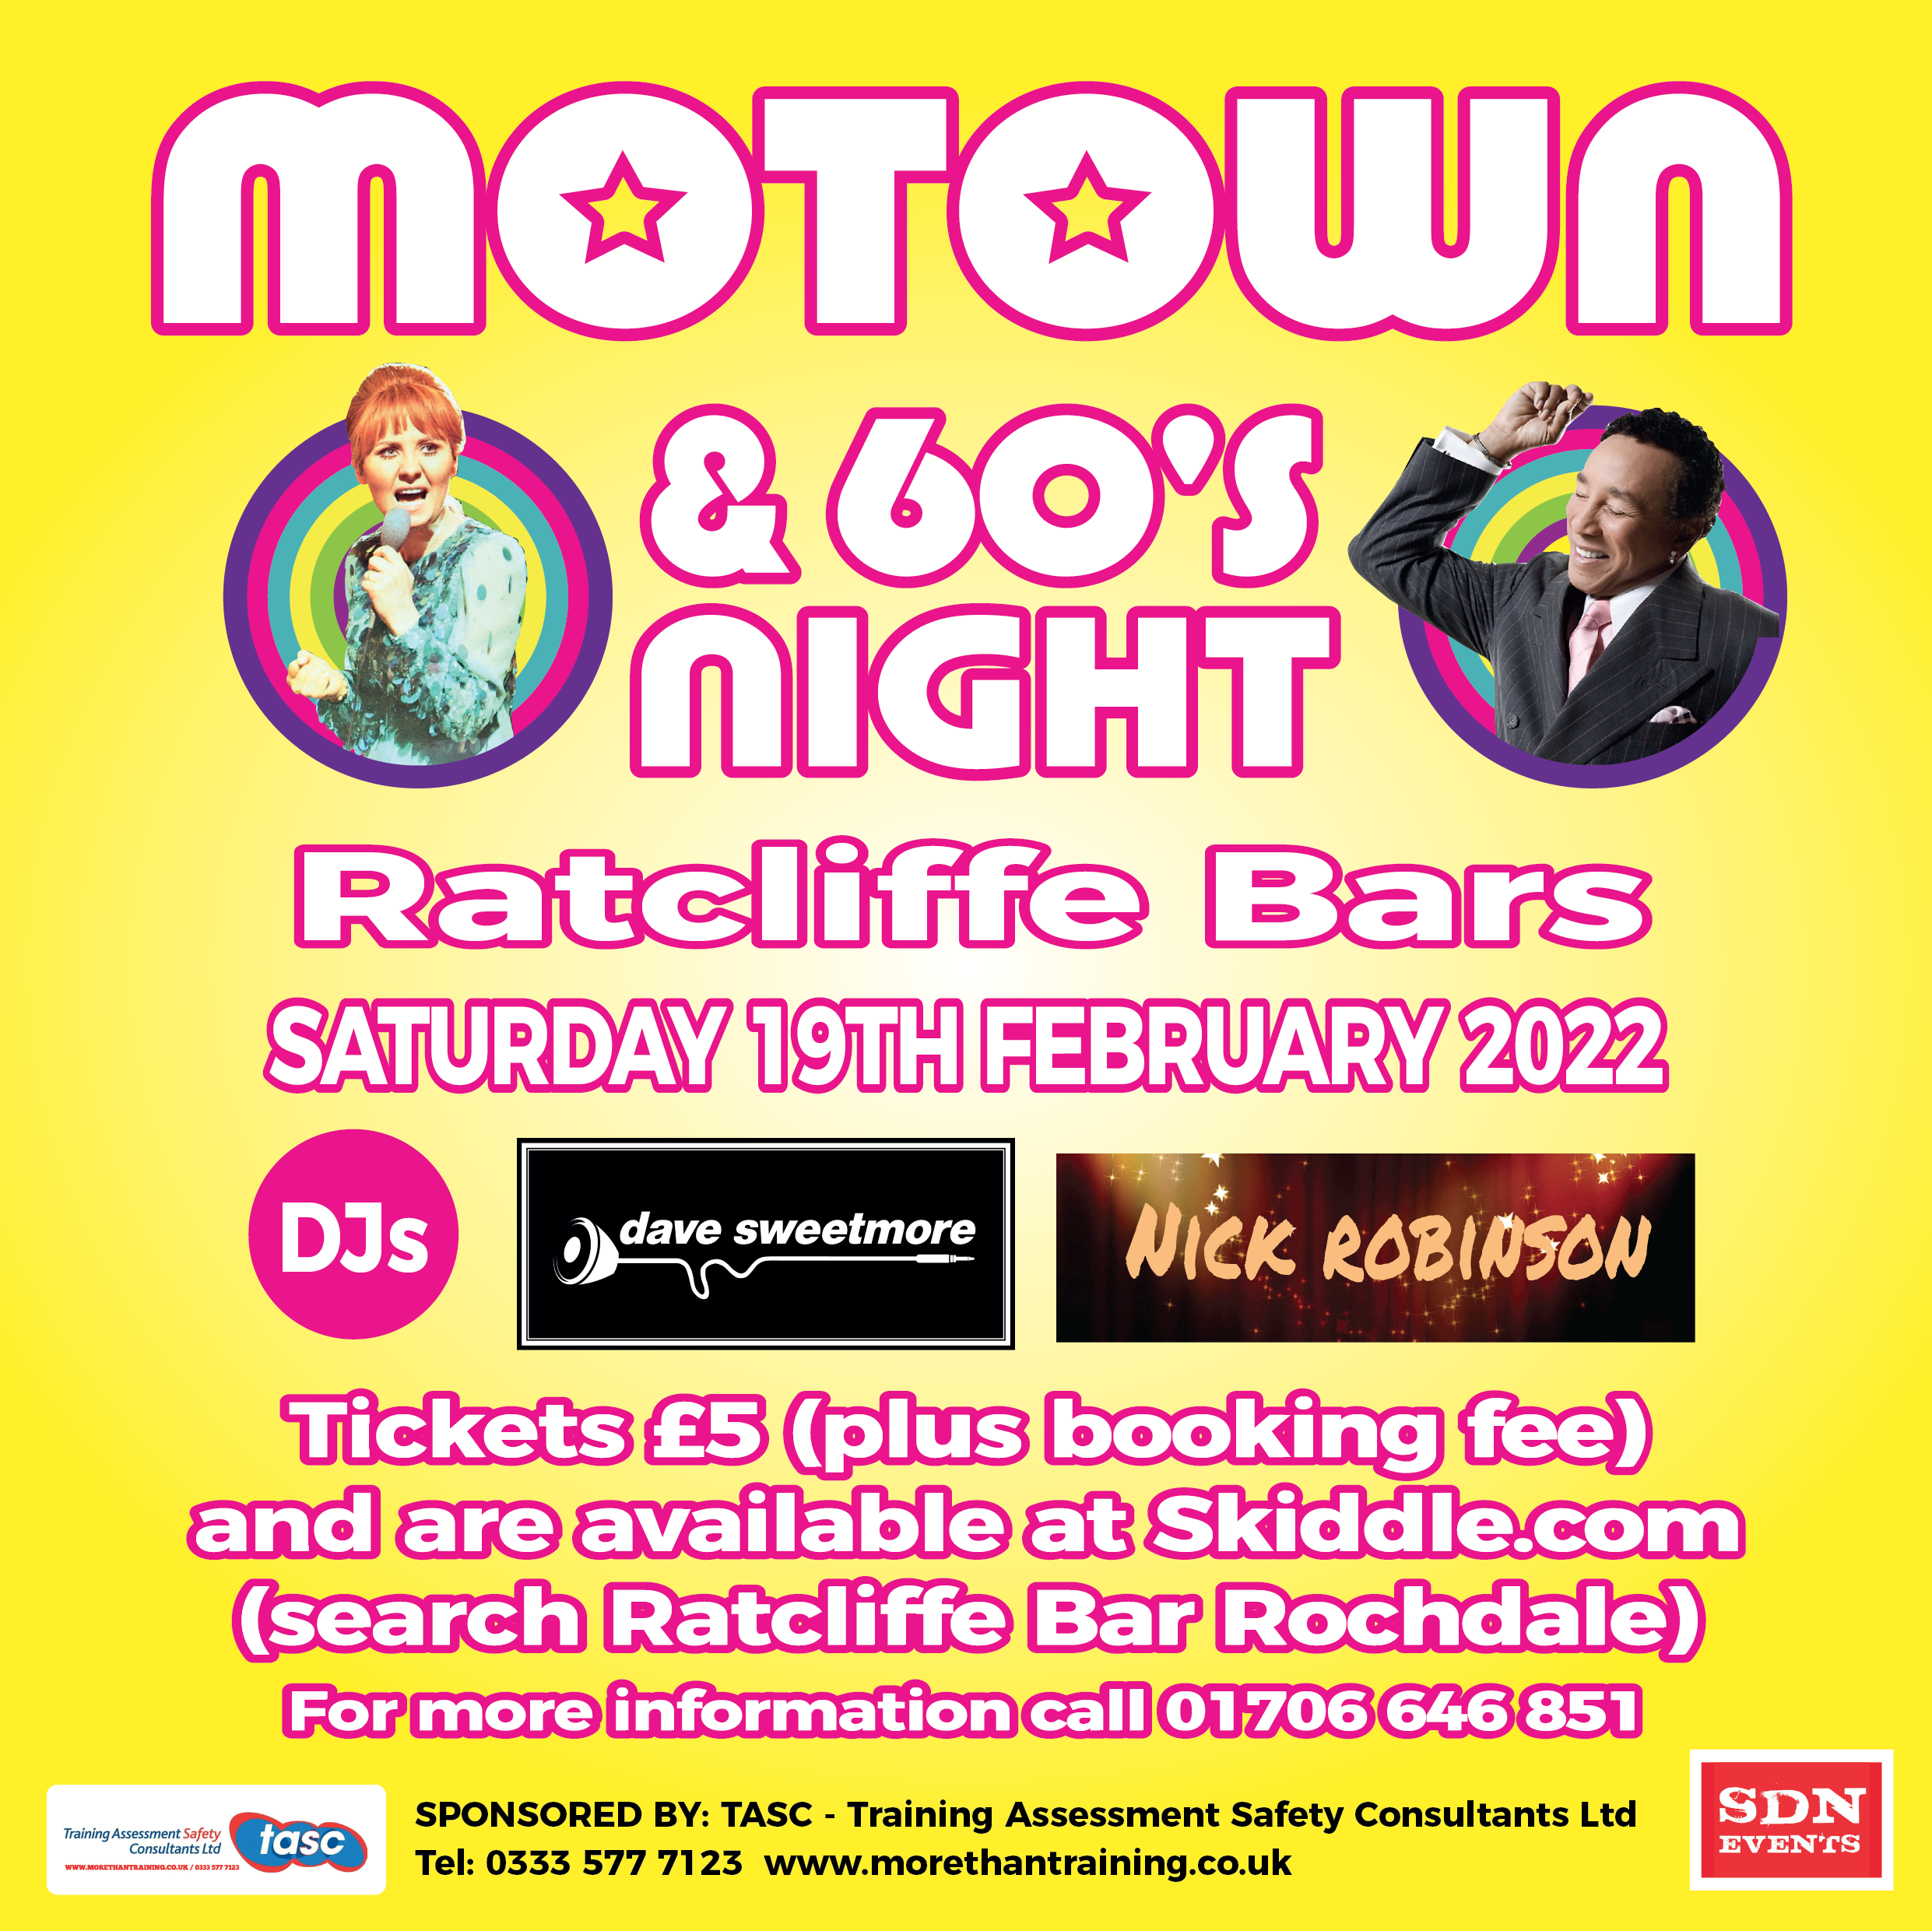 SHOUT! Motown & 60's Night - The Return Of...